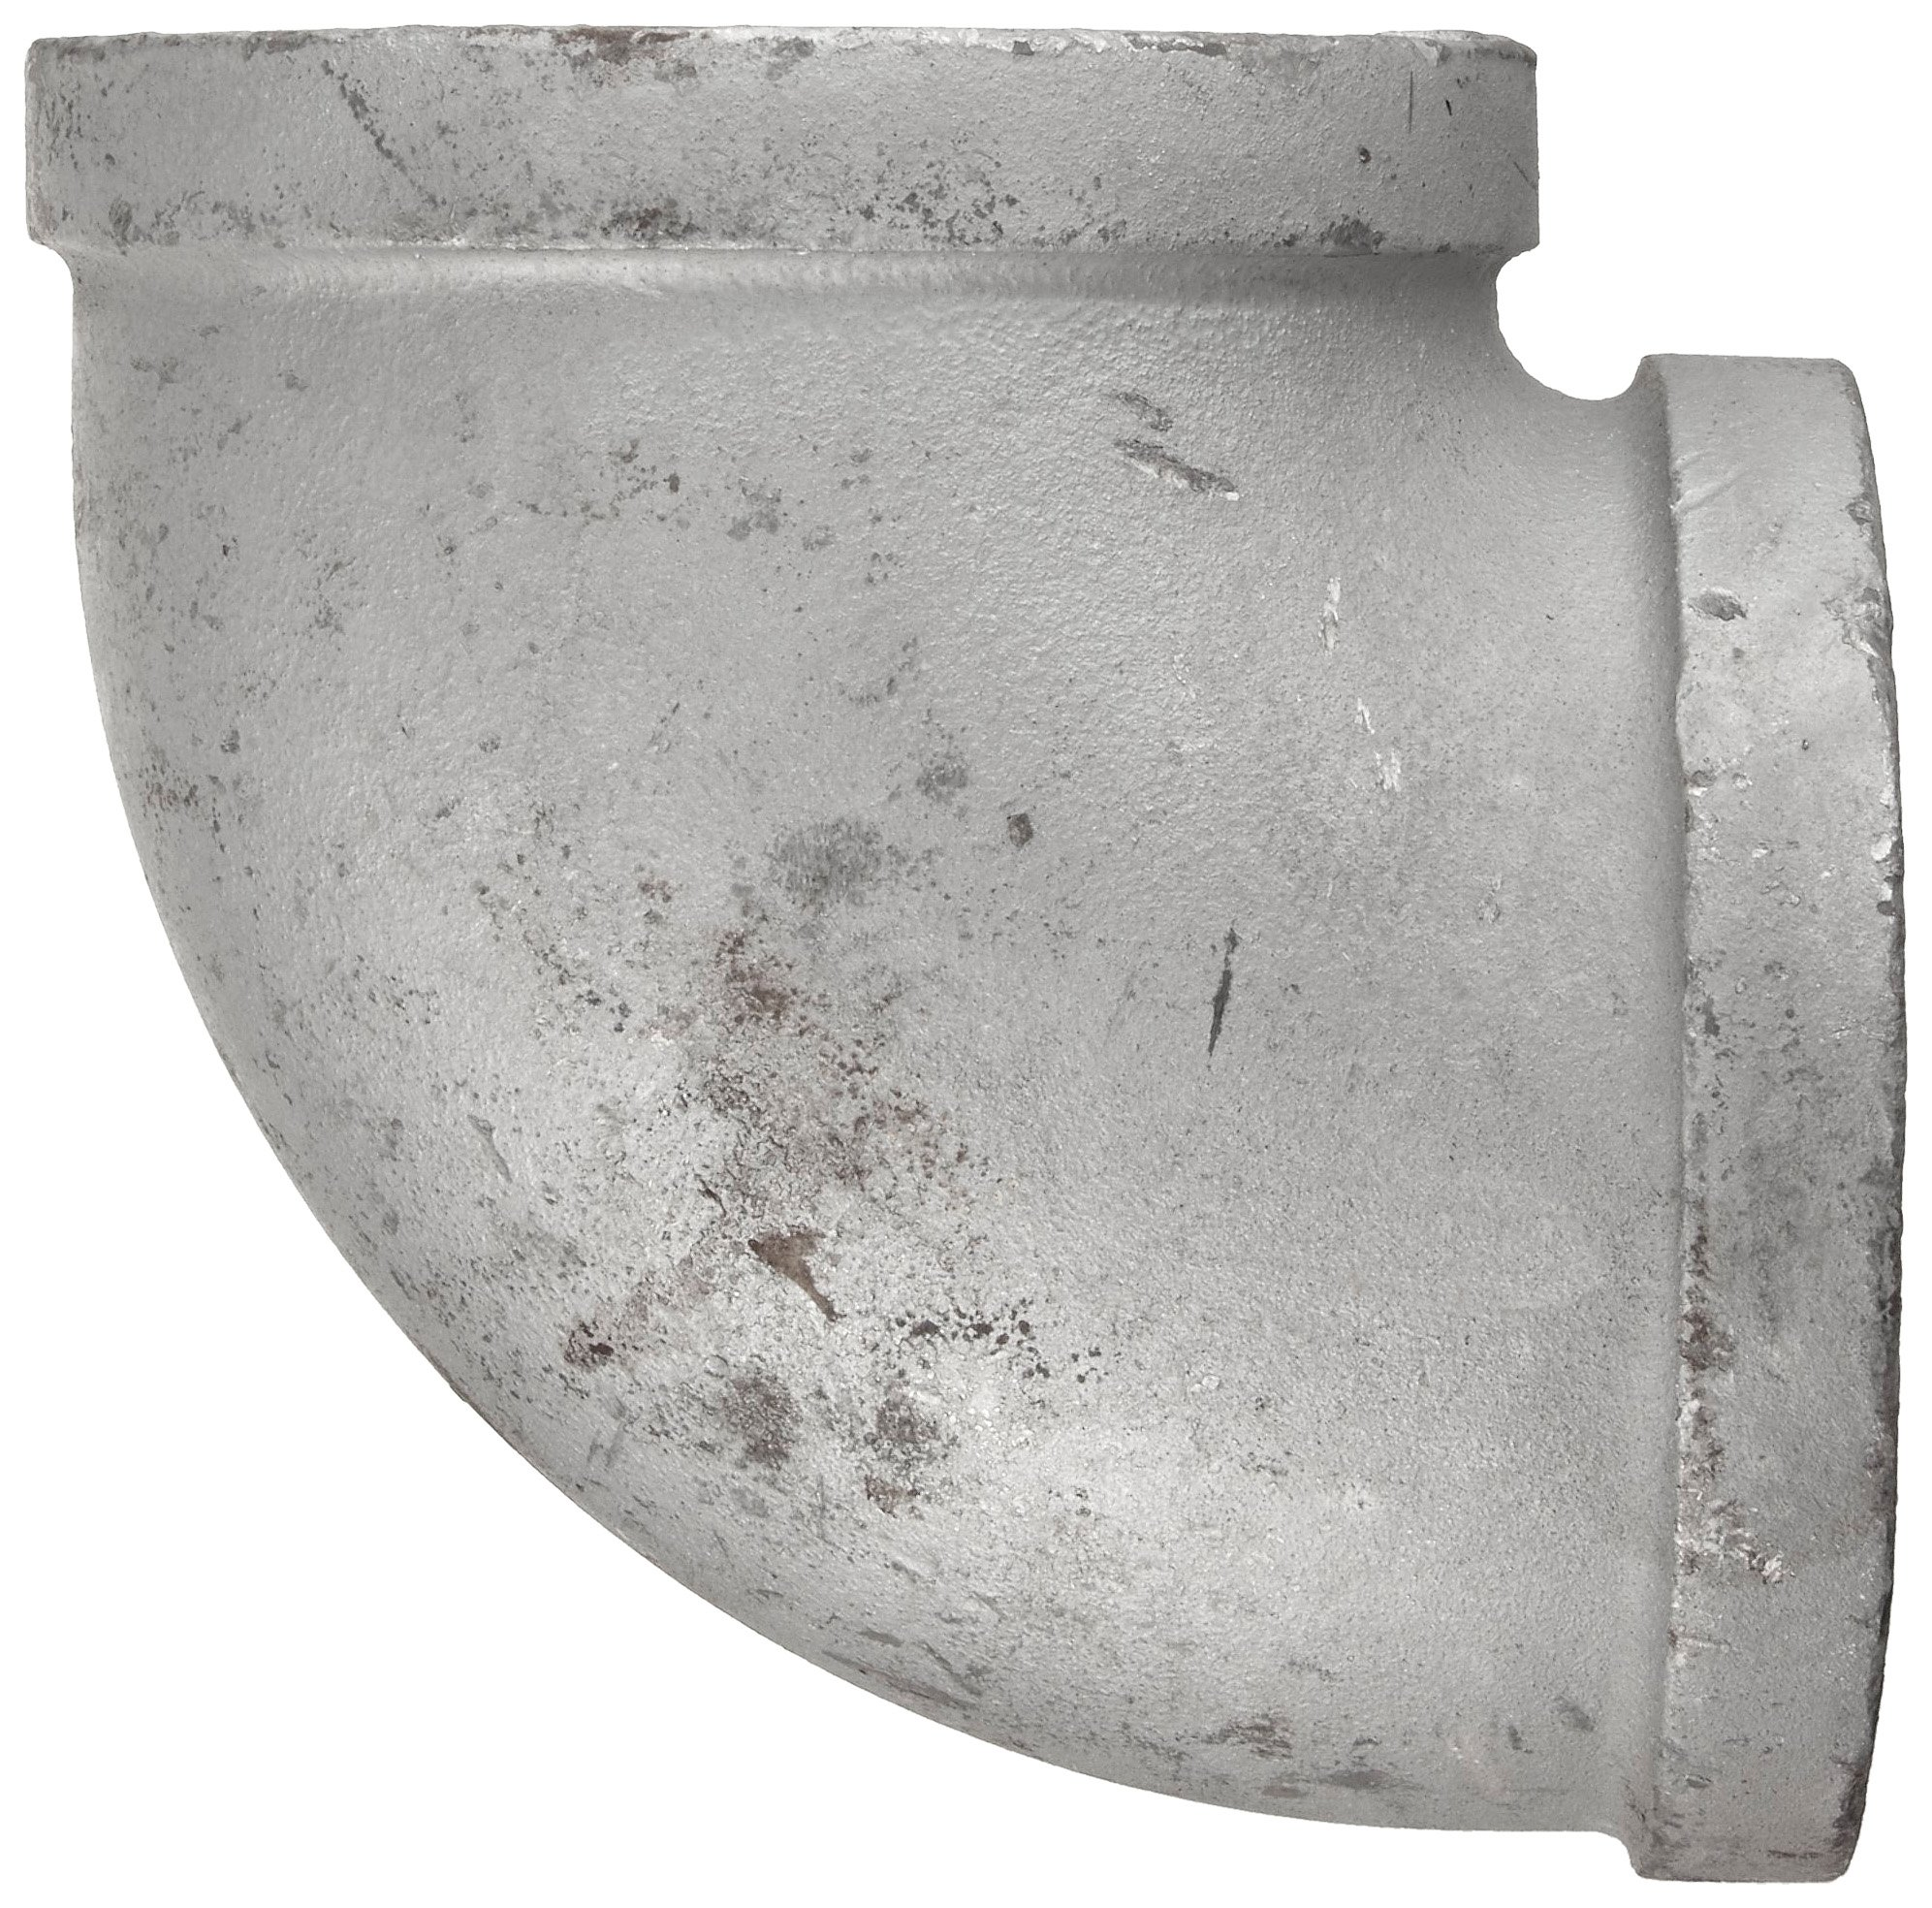 Anvil 8700124400, Malleable Iron Pipe Fitting, 90 Degree Elbow, 2'' NPT Female, Galvanized Finish